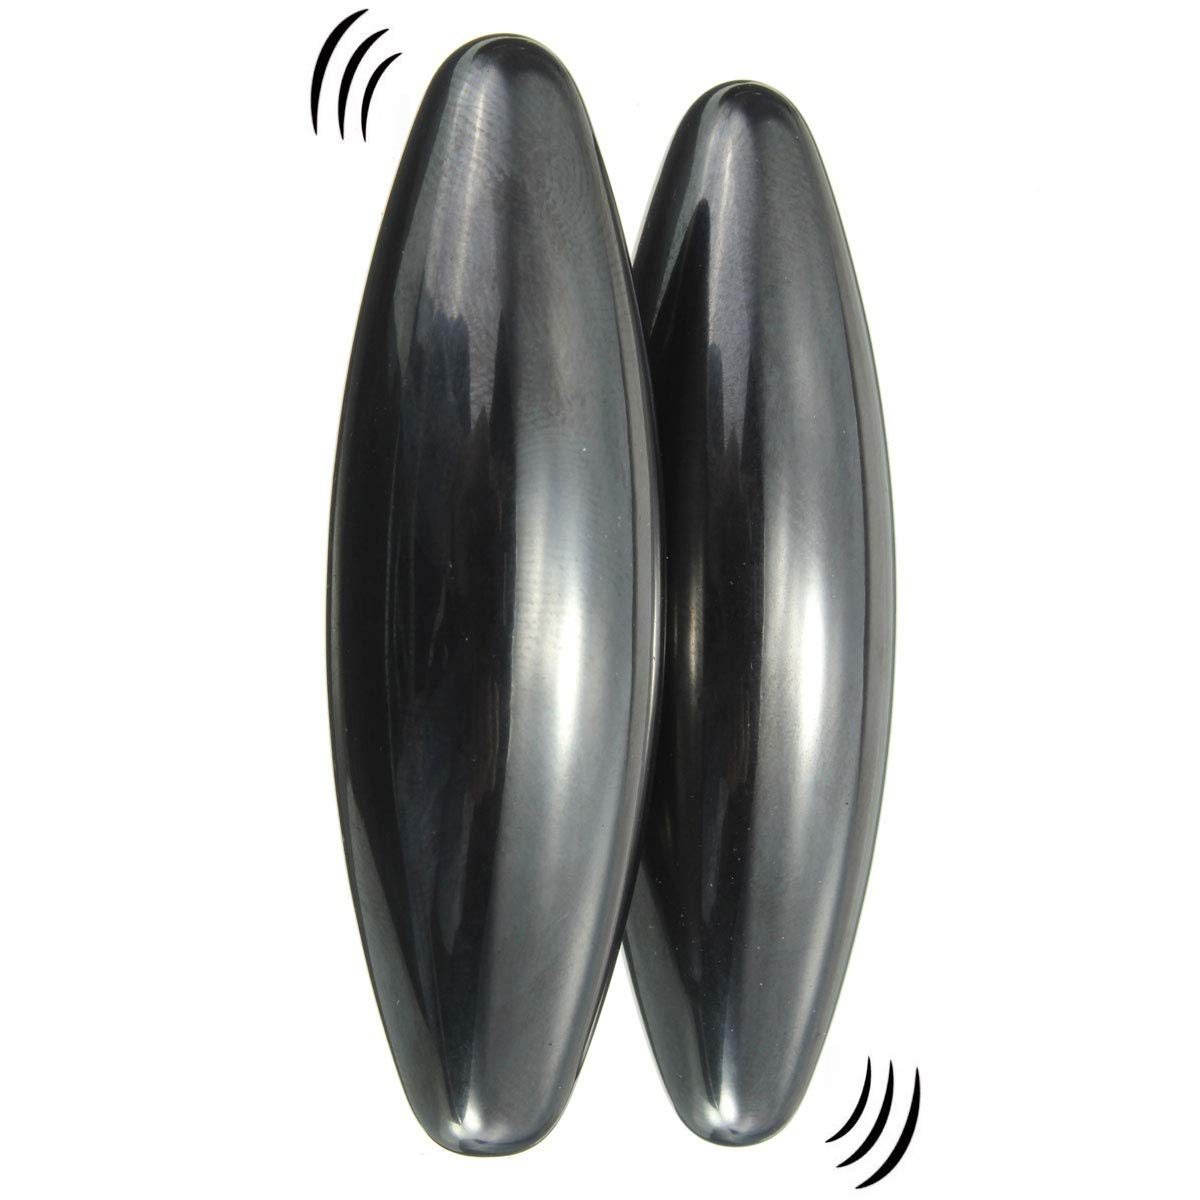 2 Large Powerful Rattle Magnets Spinning Buzzing Snake Eggs, Hematite Zingers, Educational Science Toy, Great Stress Relief for Autism, ADD, ADHD & OCD, Fidget Toy, Can be Used as Fridge Magnets